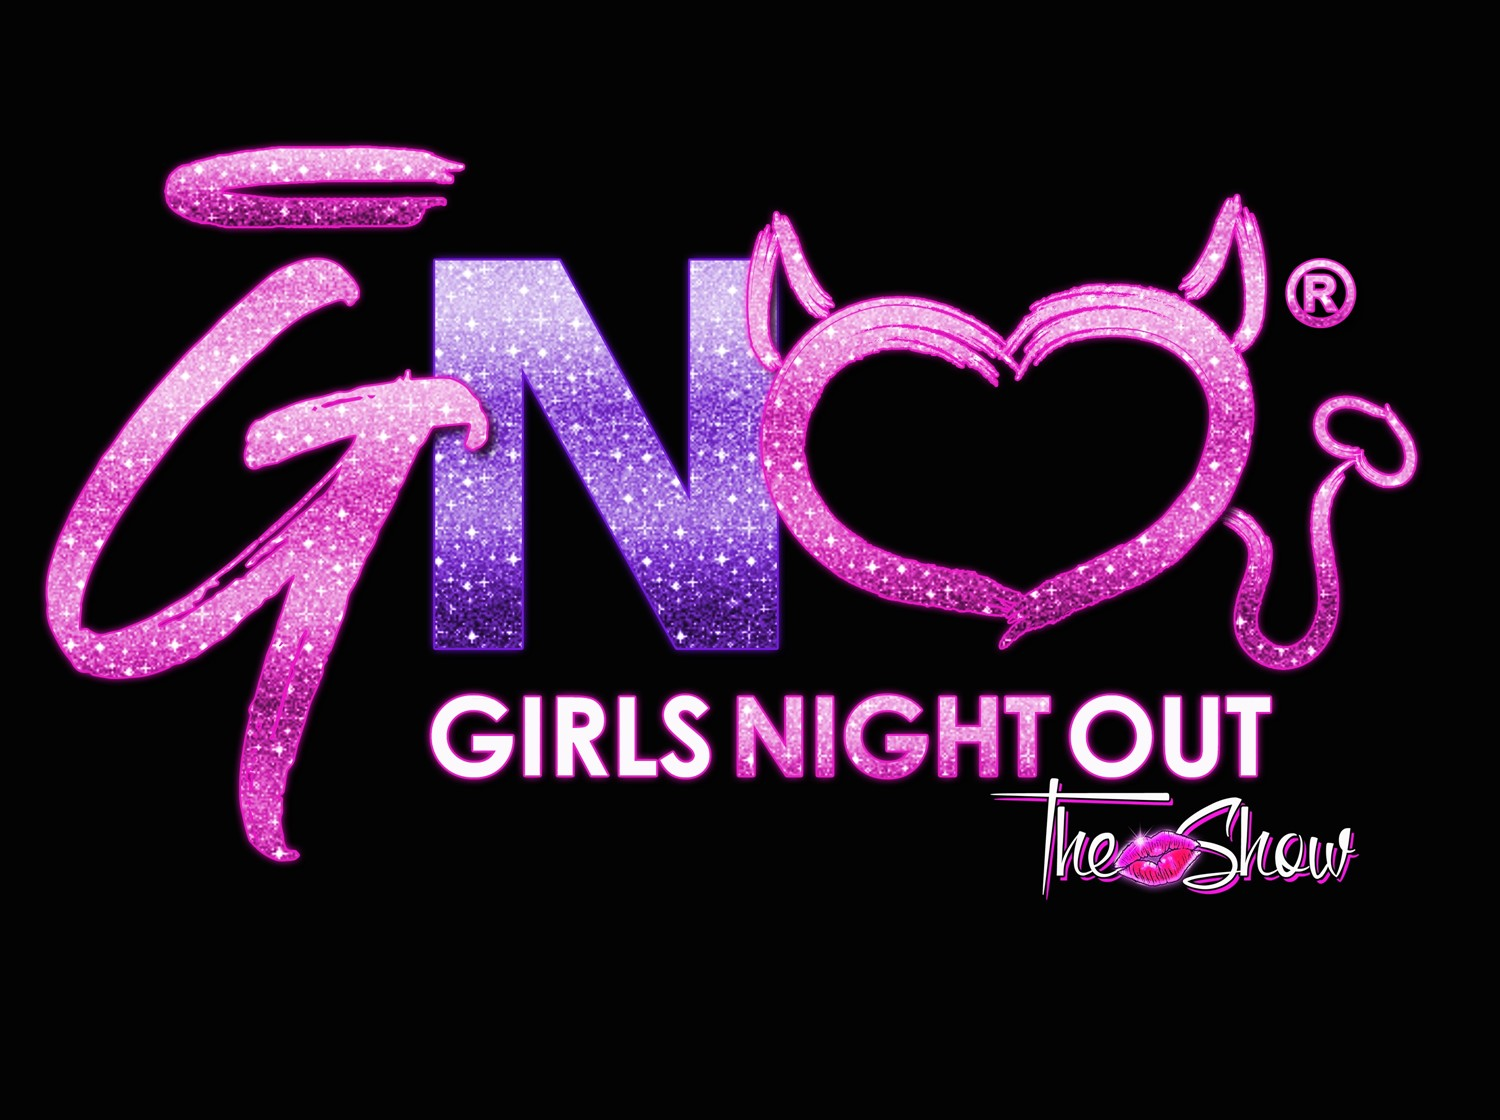 Younger's Irish Tavern (21+) Romeo, MI on abr. 22, 20:00@Younger's Irish Tavern - Buy tickets and Get information on Girls Night Out the Show tickets.girlsnightouttheshow.com